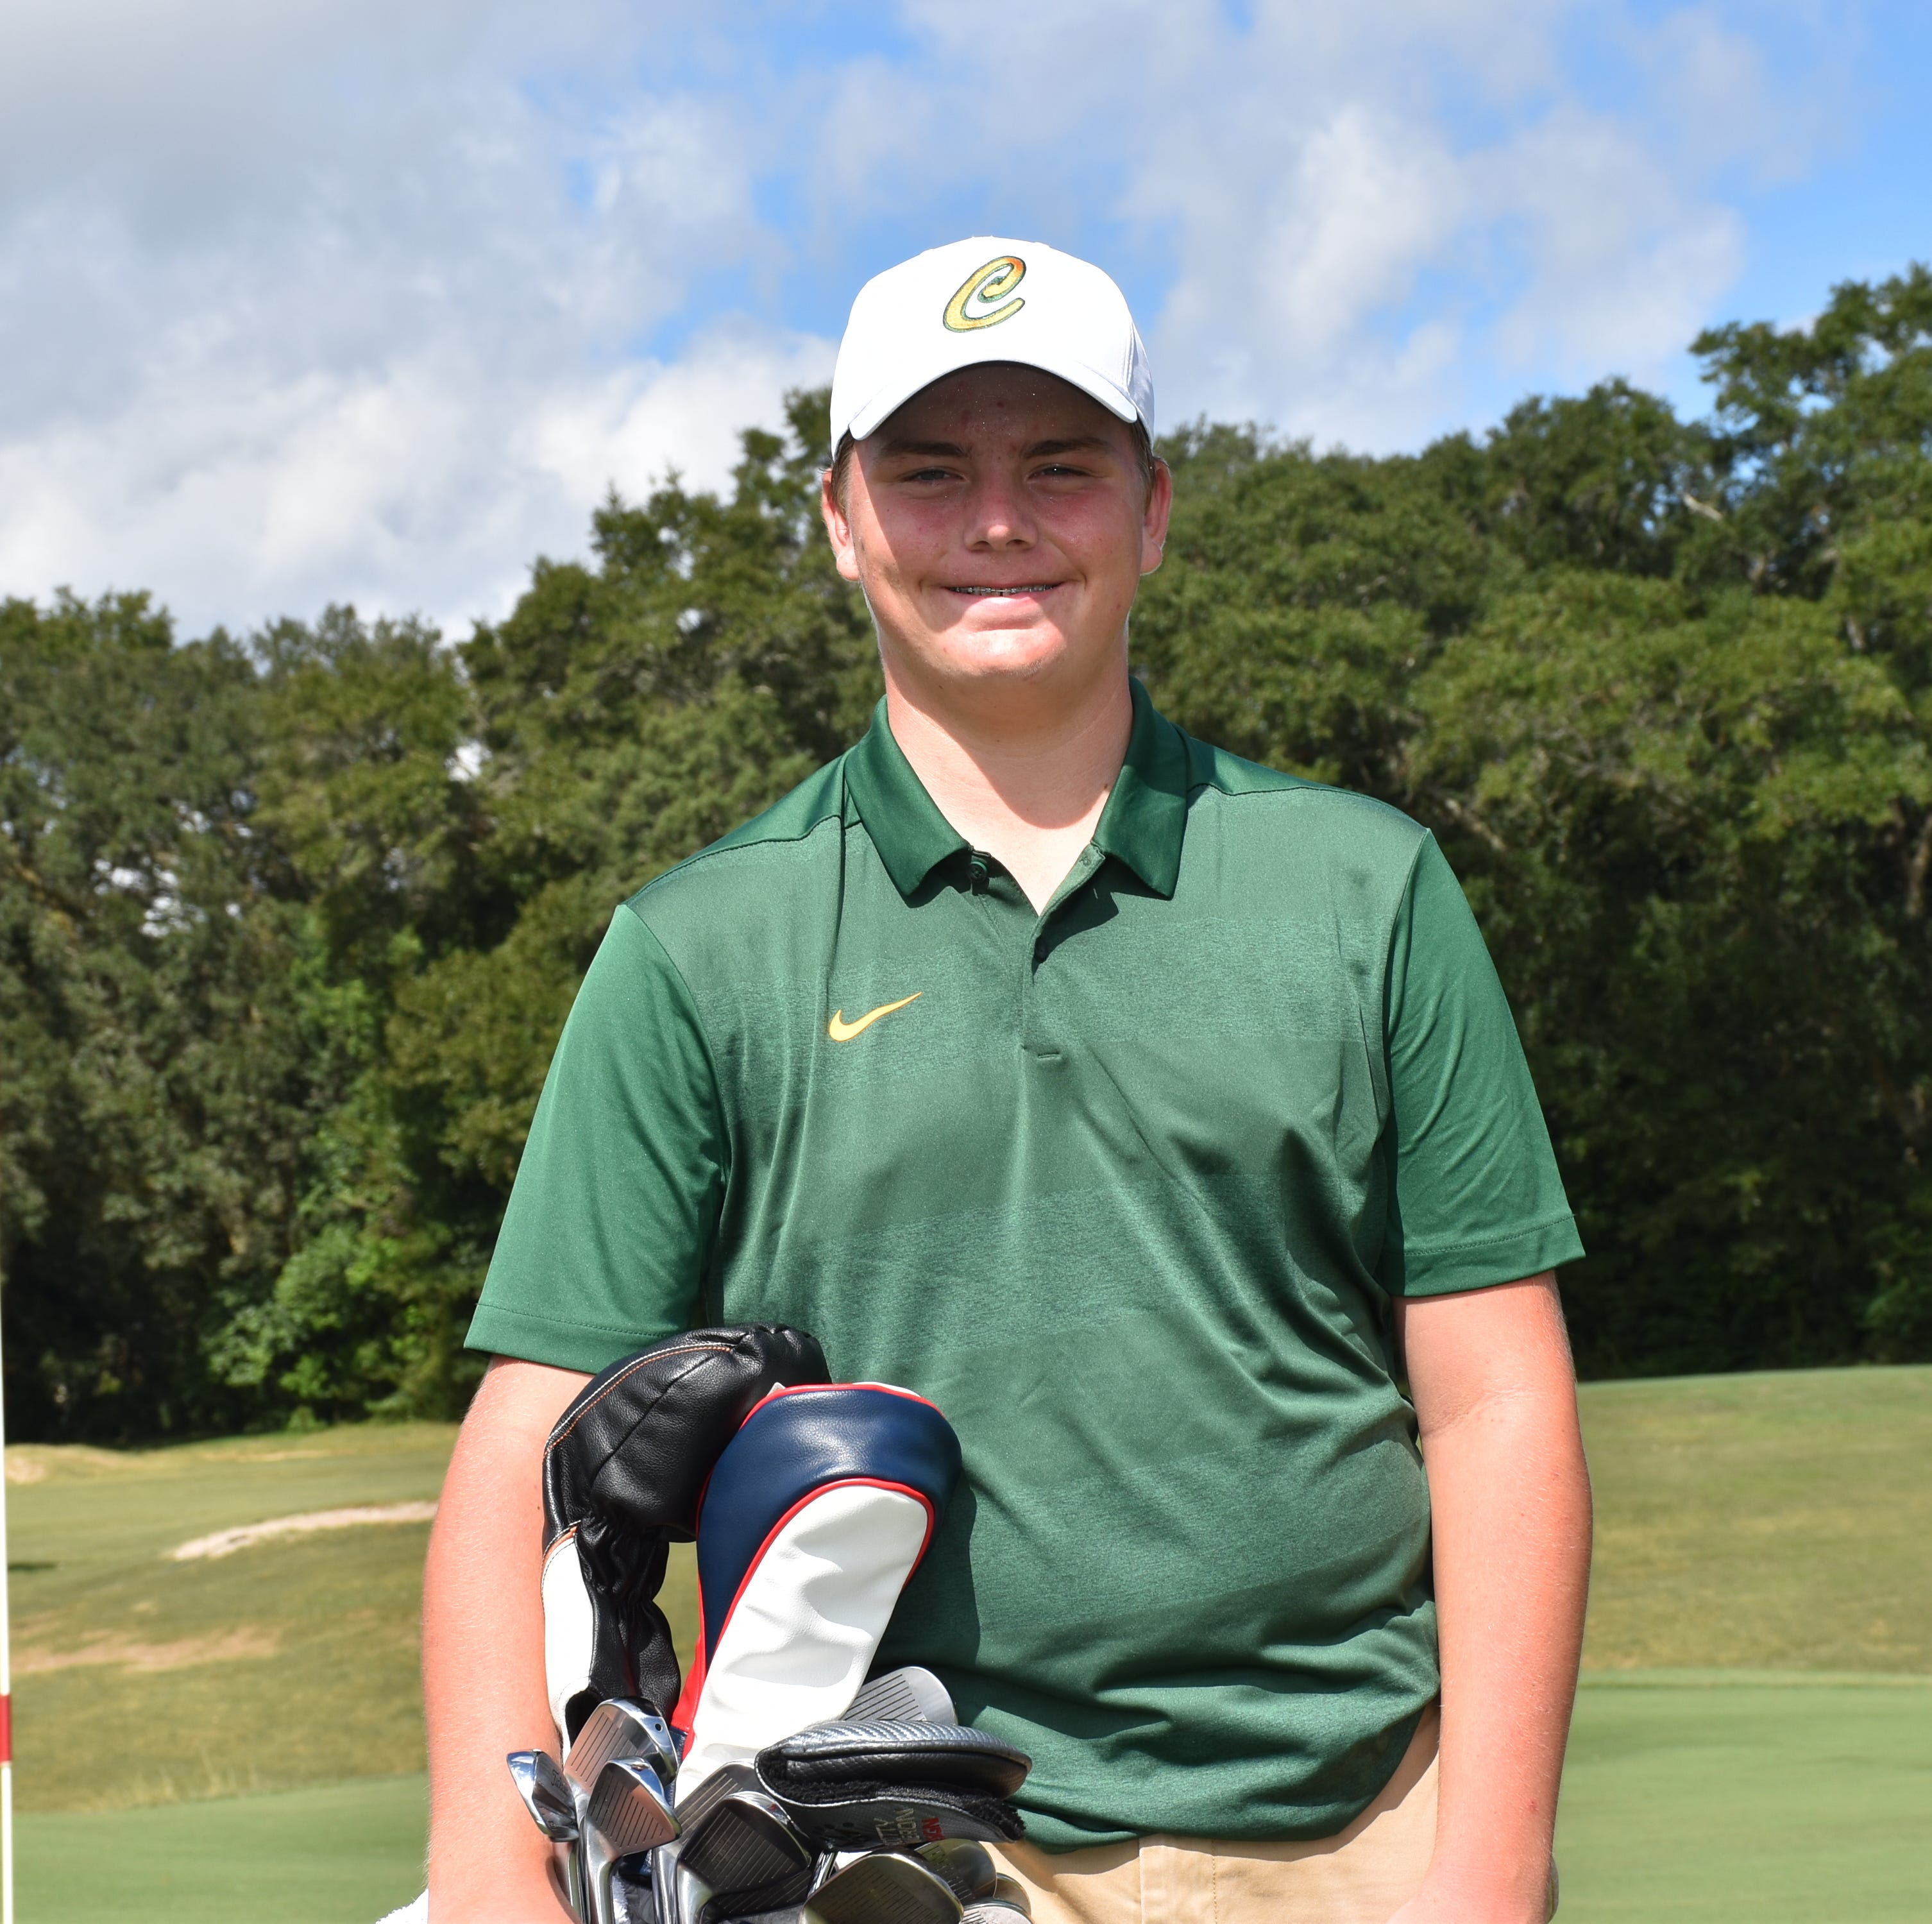 Pensacola Catholic freshman golfer makes hole-in-one on par-4 hole to win district title